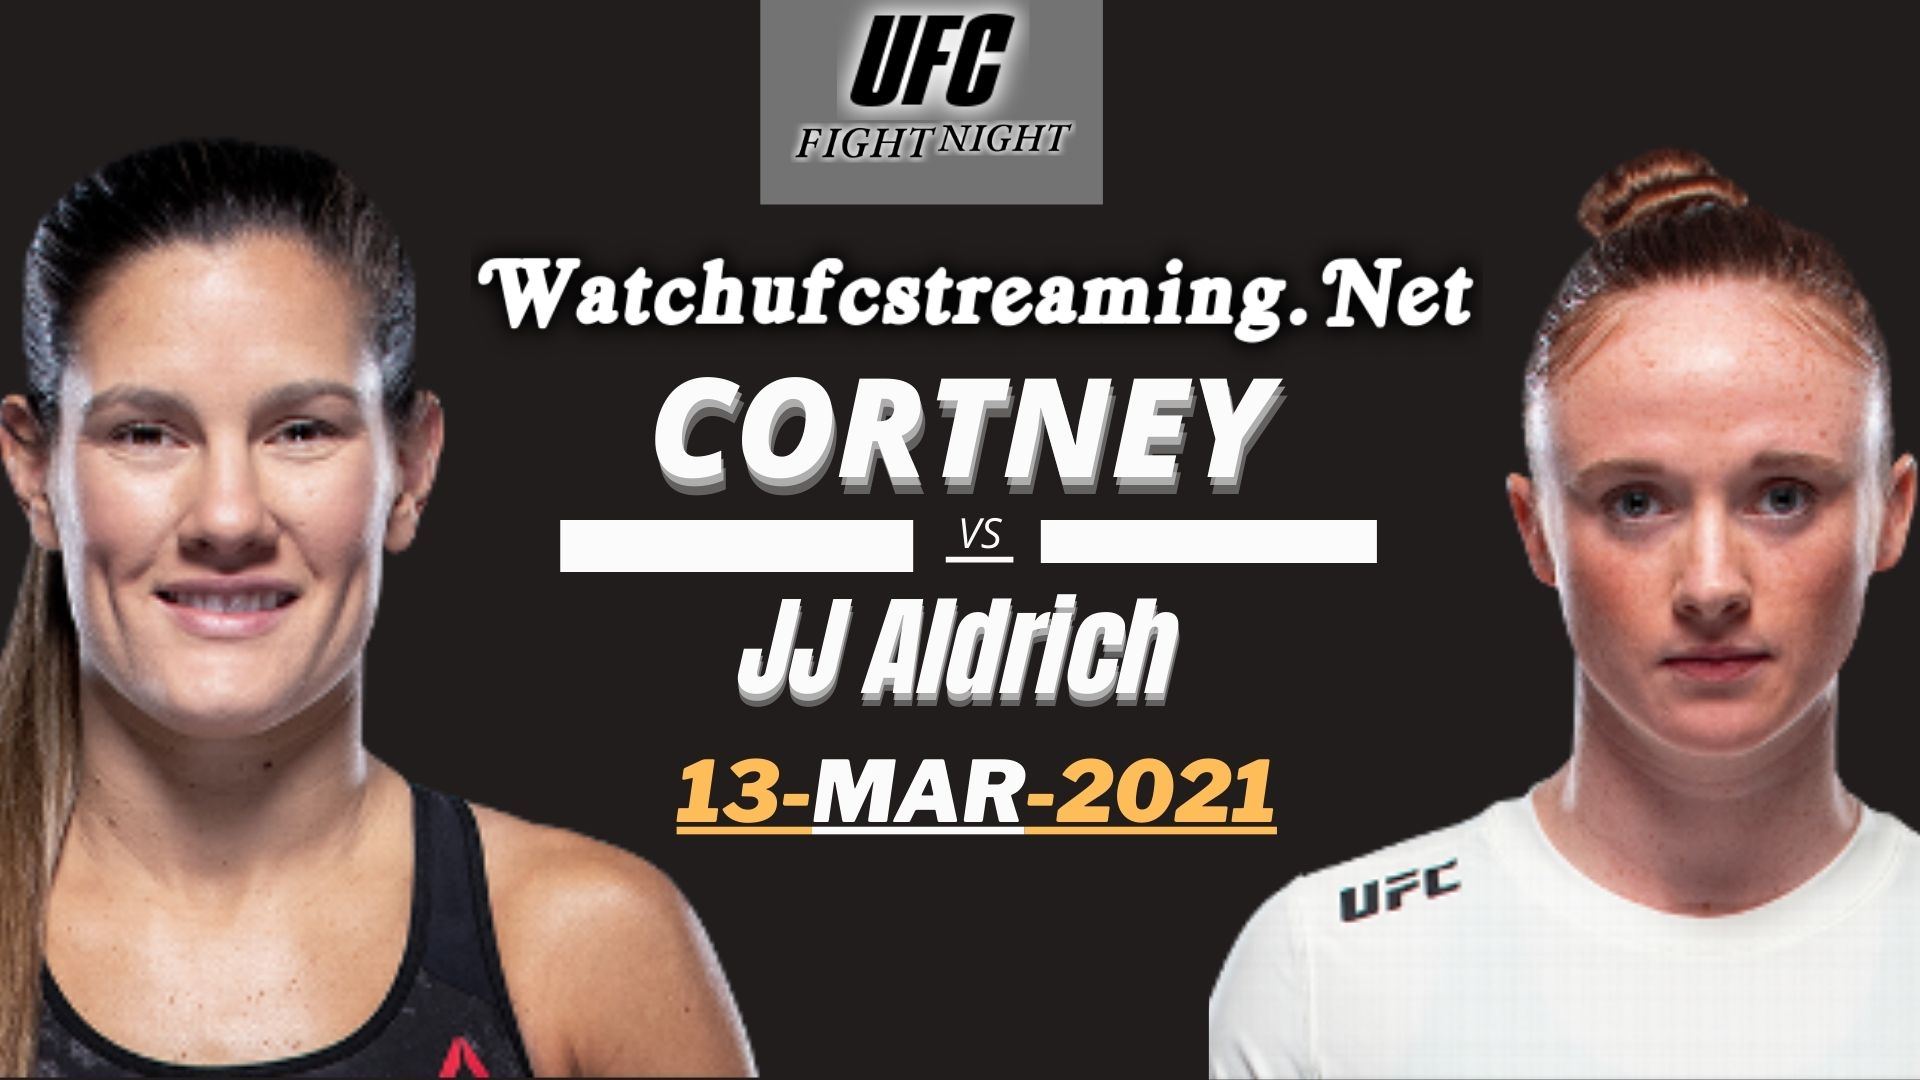 UFC | Casey Vs Aldrich Highlights 2021 - Flyweight